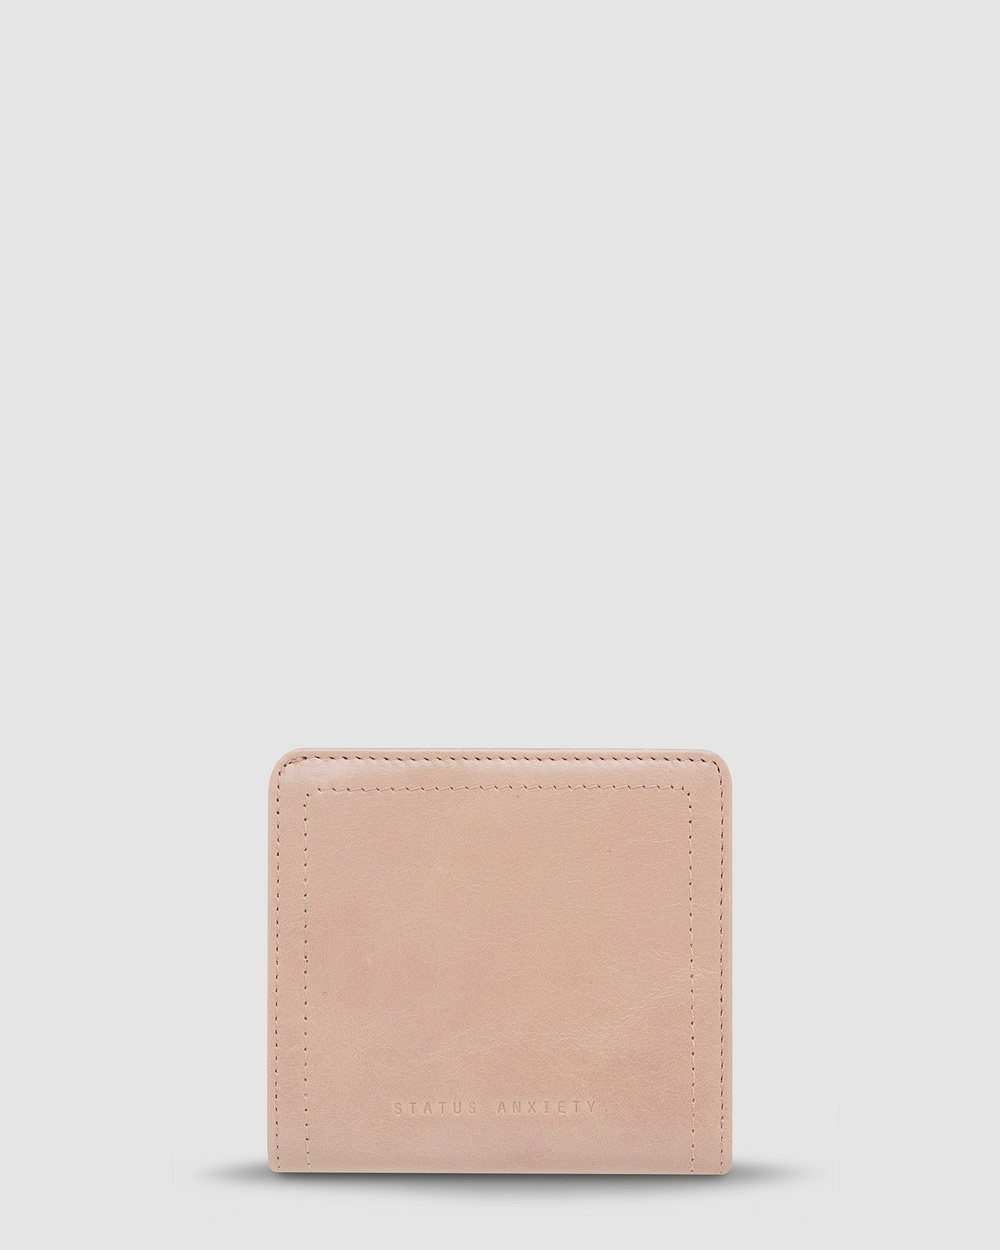 Status Anxiety In Another Life Wallet Wallets Dusty Pink